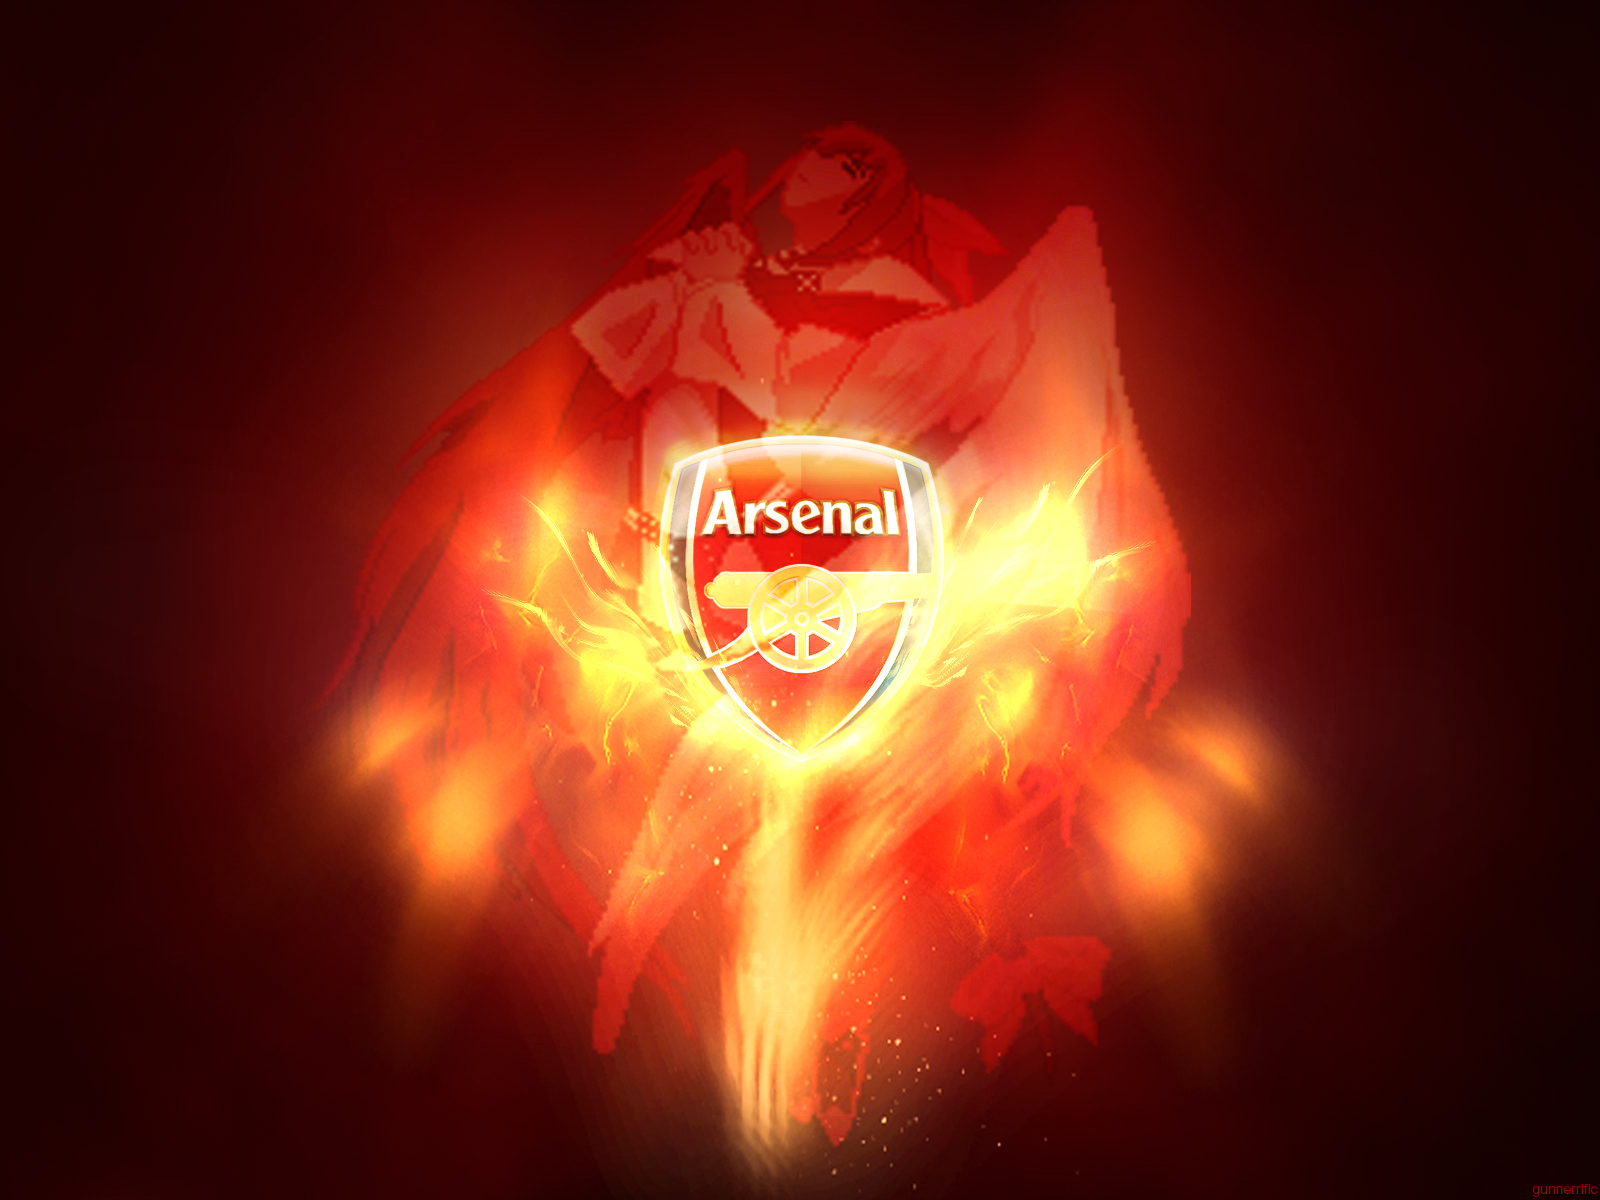 [50+] Arsenal Wallpapers For Desktop On WallpaperSafari